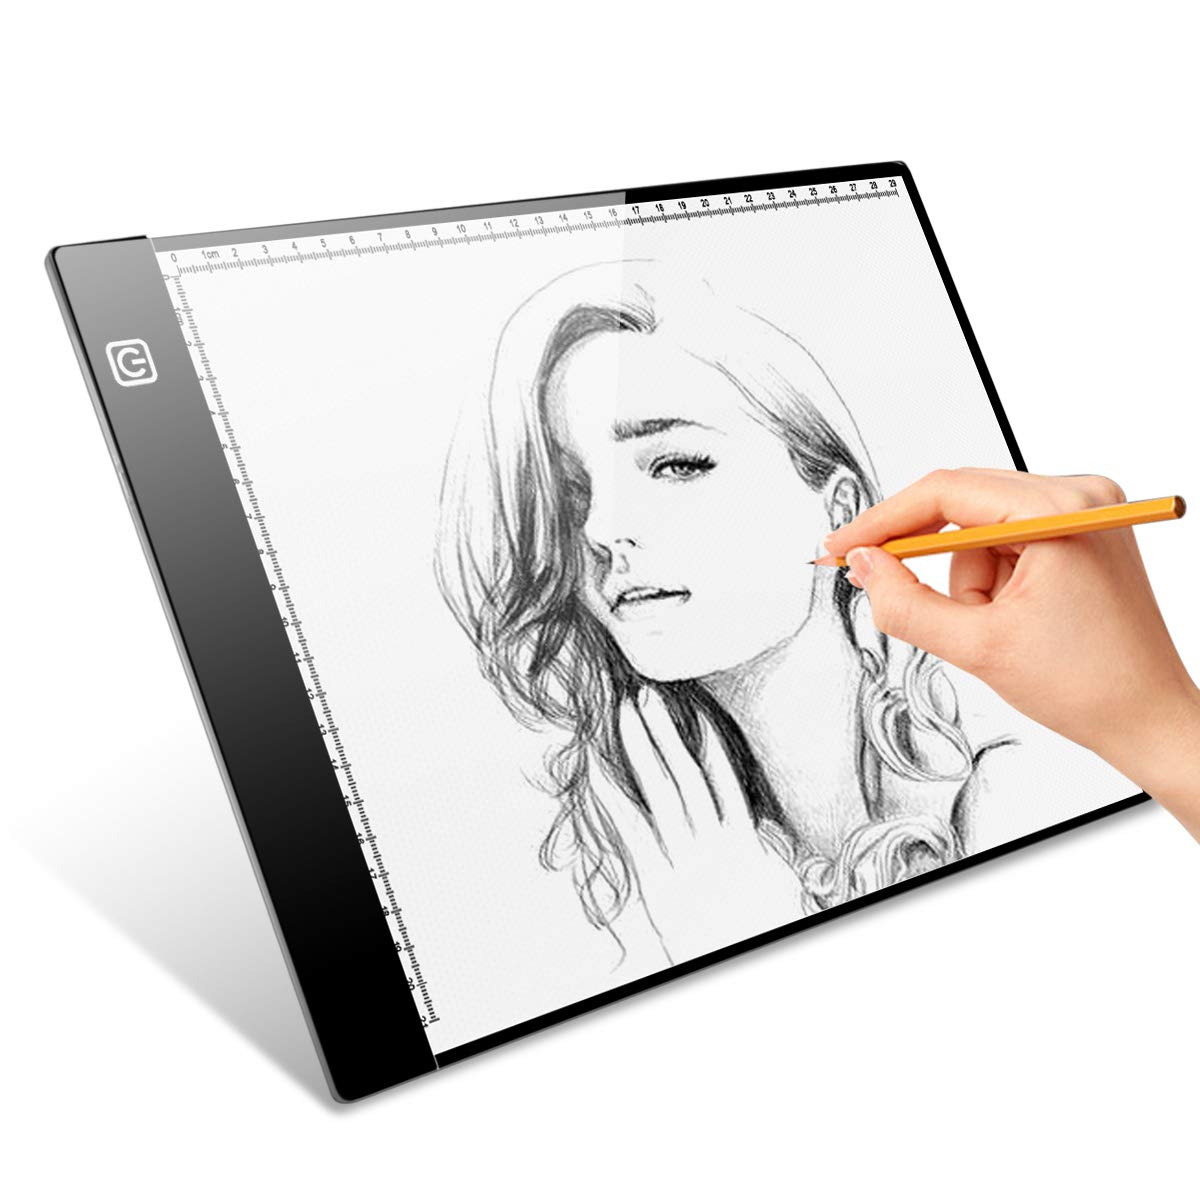 Tracing Light pad, A4 Ultra-Thin Portable LED Light Box Light-up Tracing Pad with Stepless Adjustable Brightness Pad, Coloring Board for Kids, Gift, Toys for Boys and Girls, Ages 4, 5, 6, 7, 8, 9,10